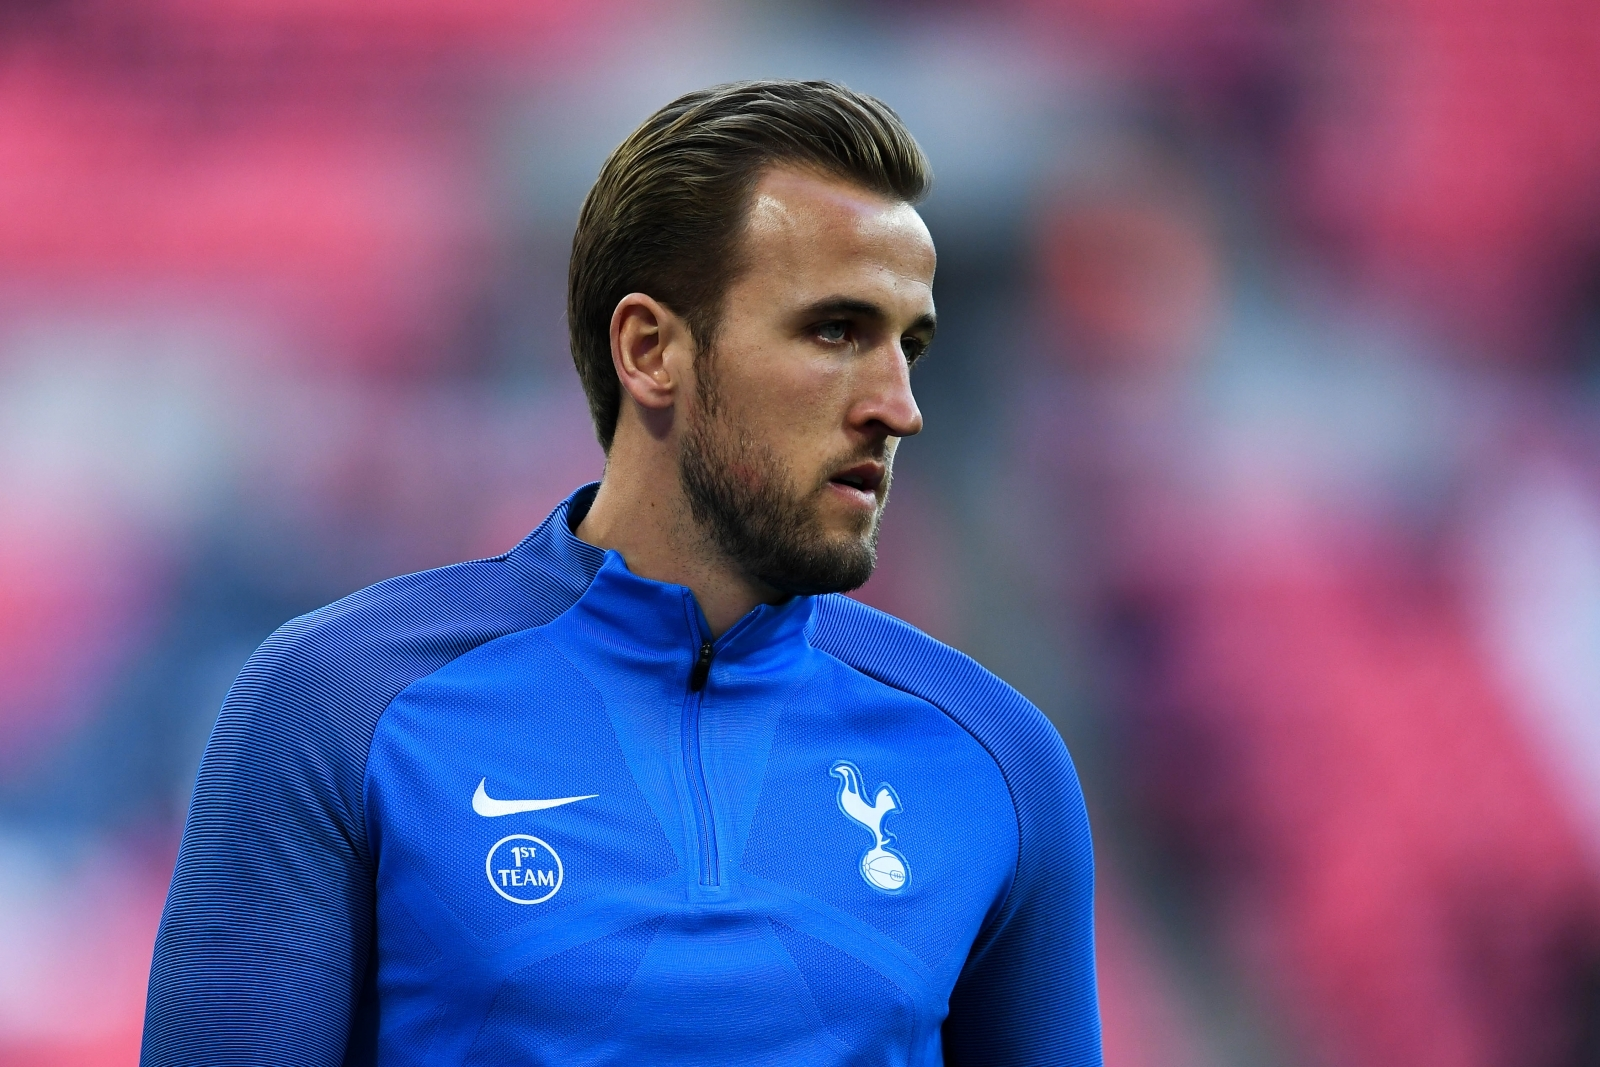 McManaman would not buy Tottenham's Kane at Real Madrid